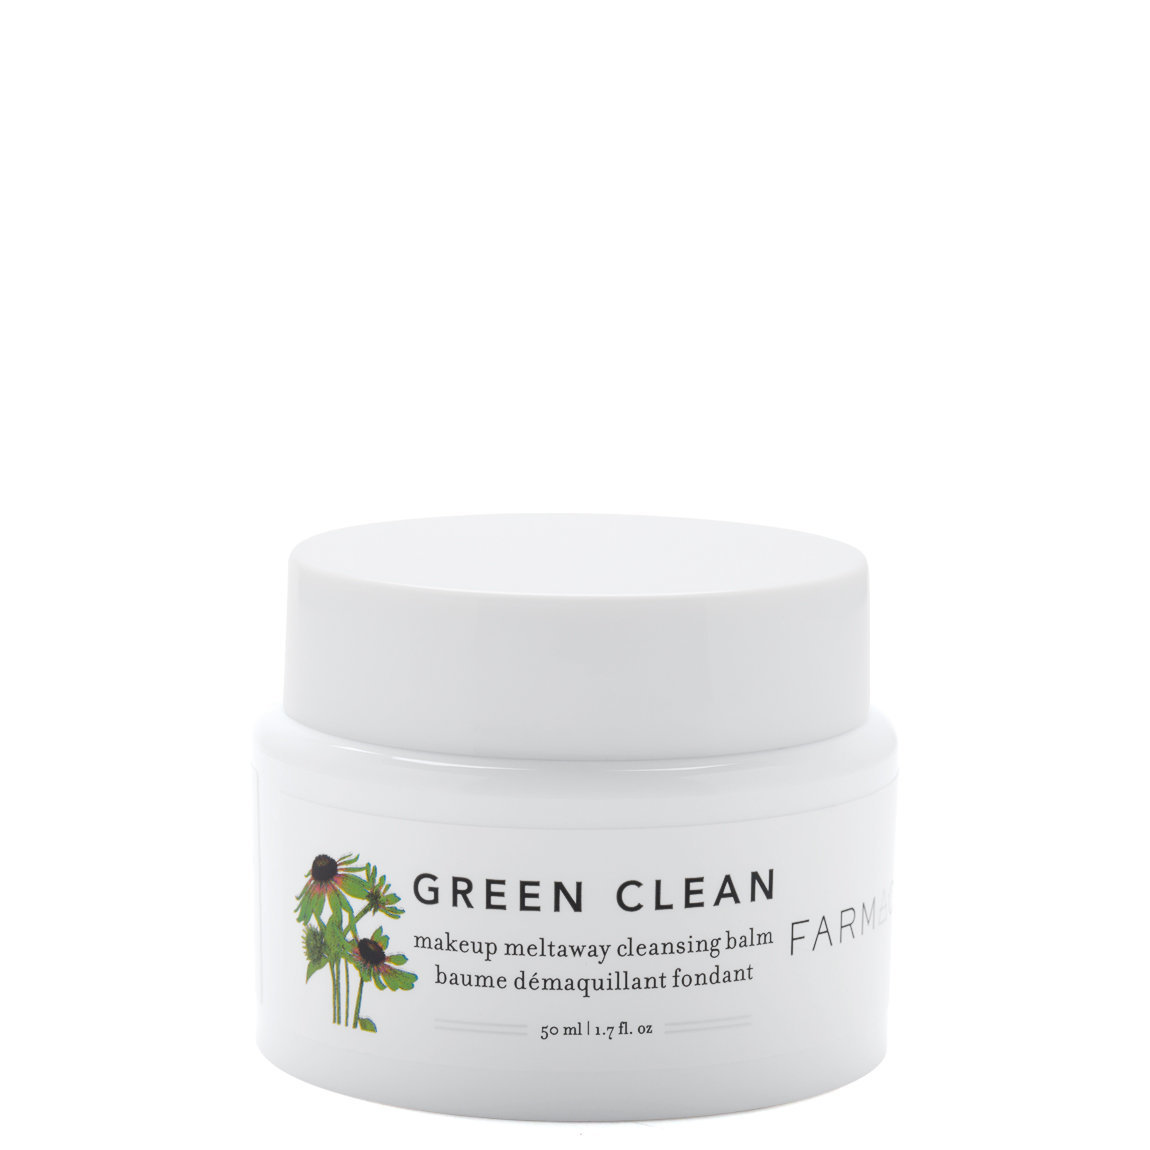 Farmacy Green Clean Makeup Meltaway Cleansing Balm 1.7 oz product swatch.